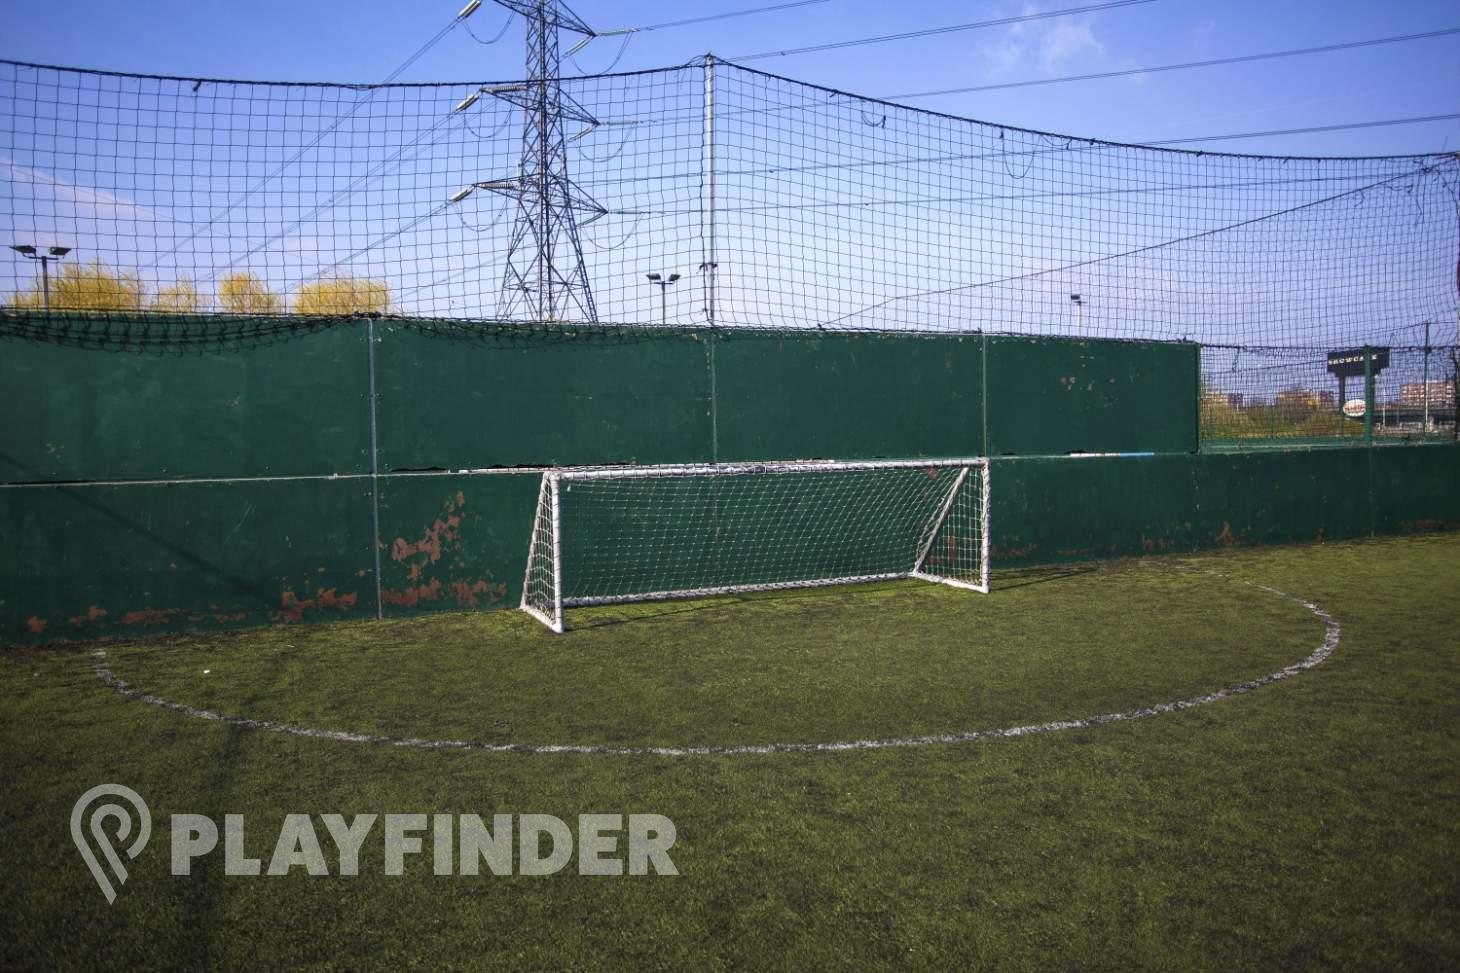 Powerleague Peterborough 5 a side | 3G Astroturf football pitch